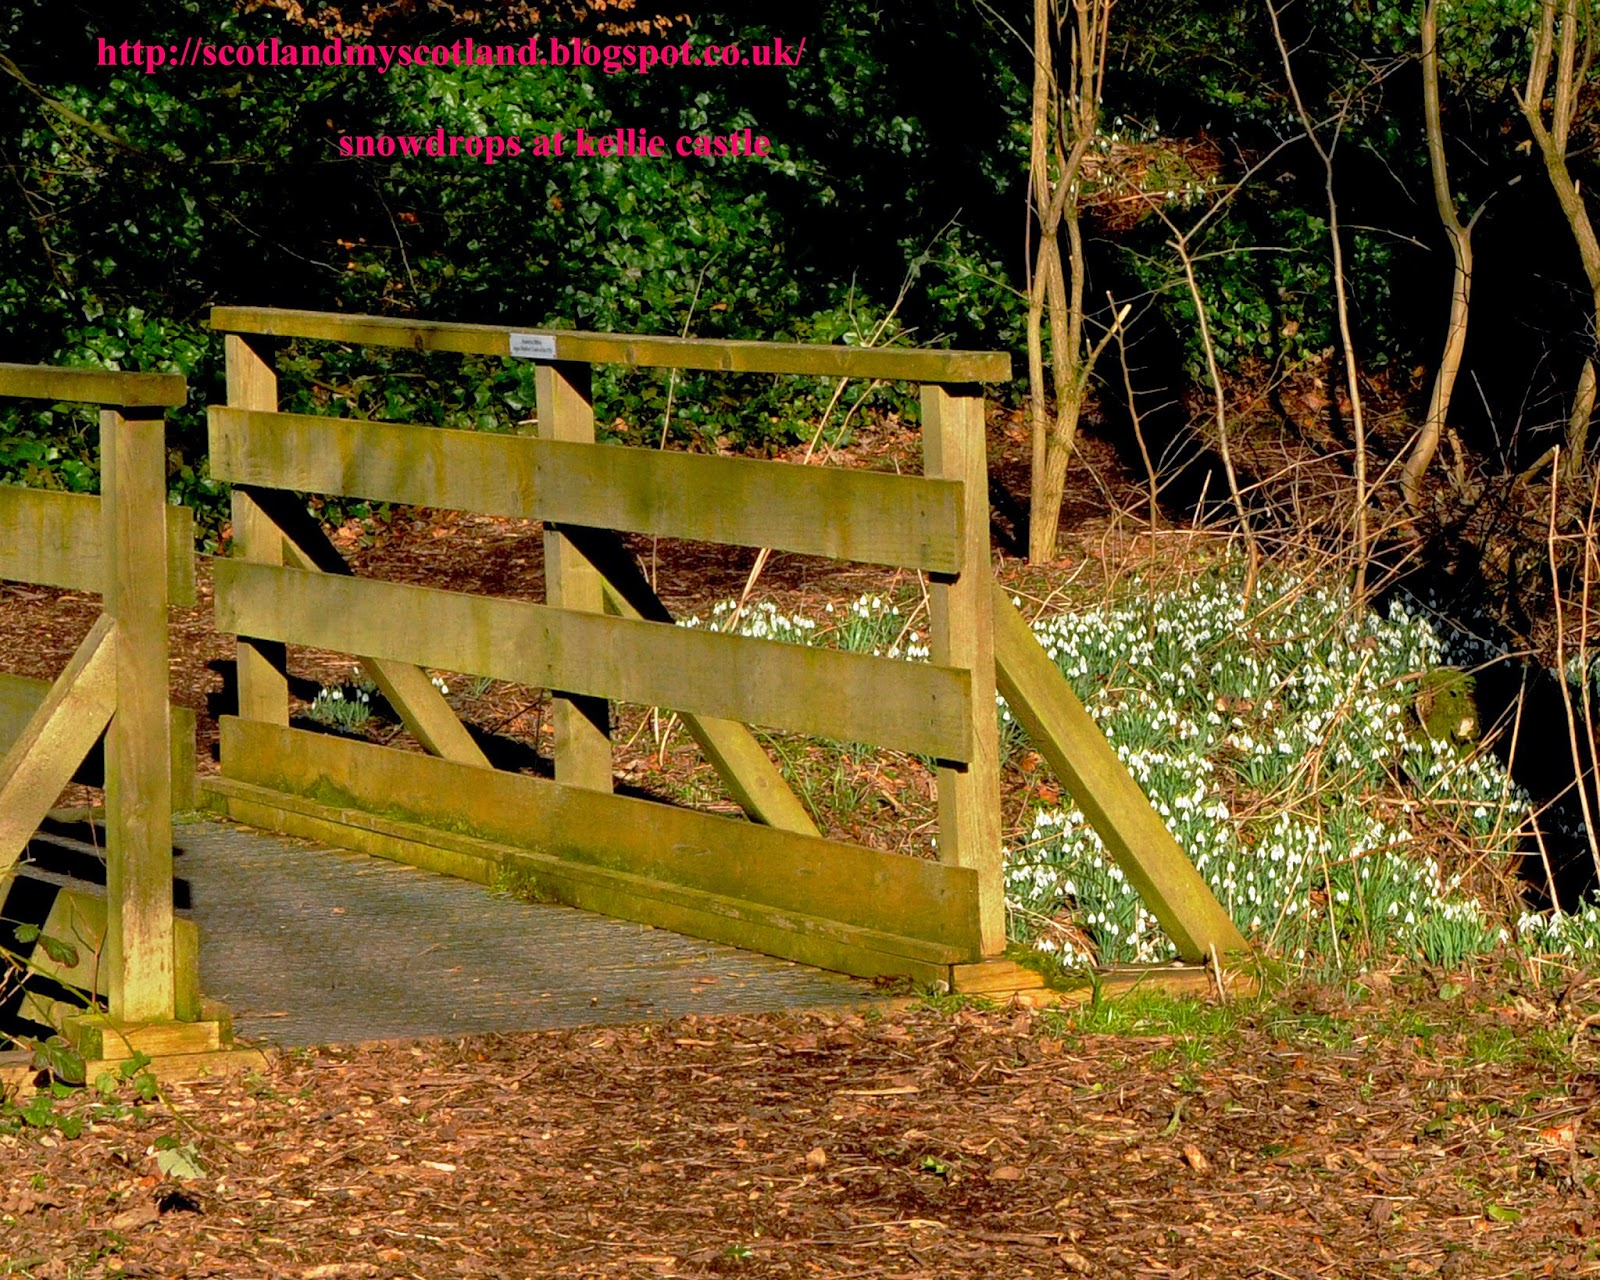 wood footbridge and snowdrops